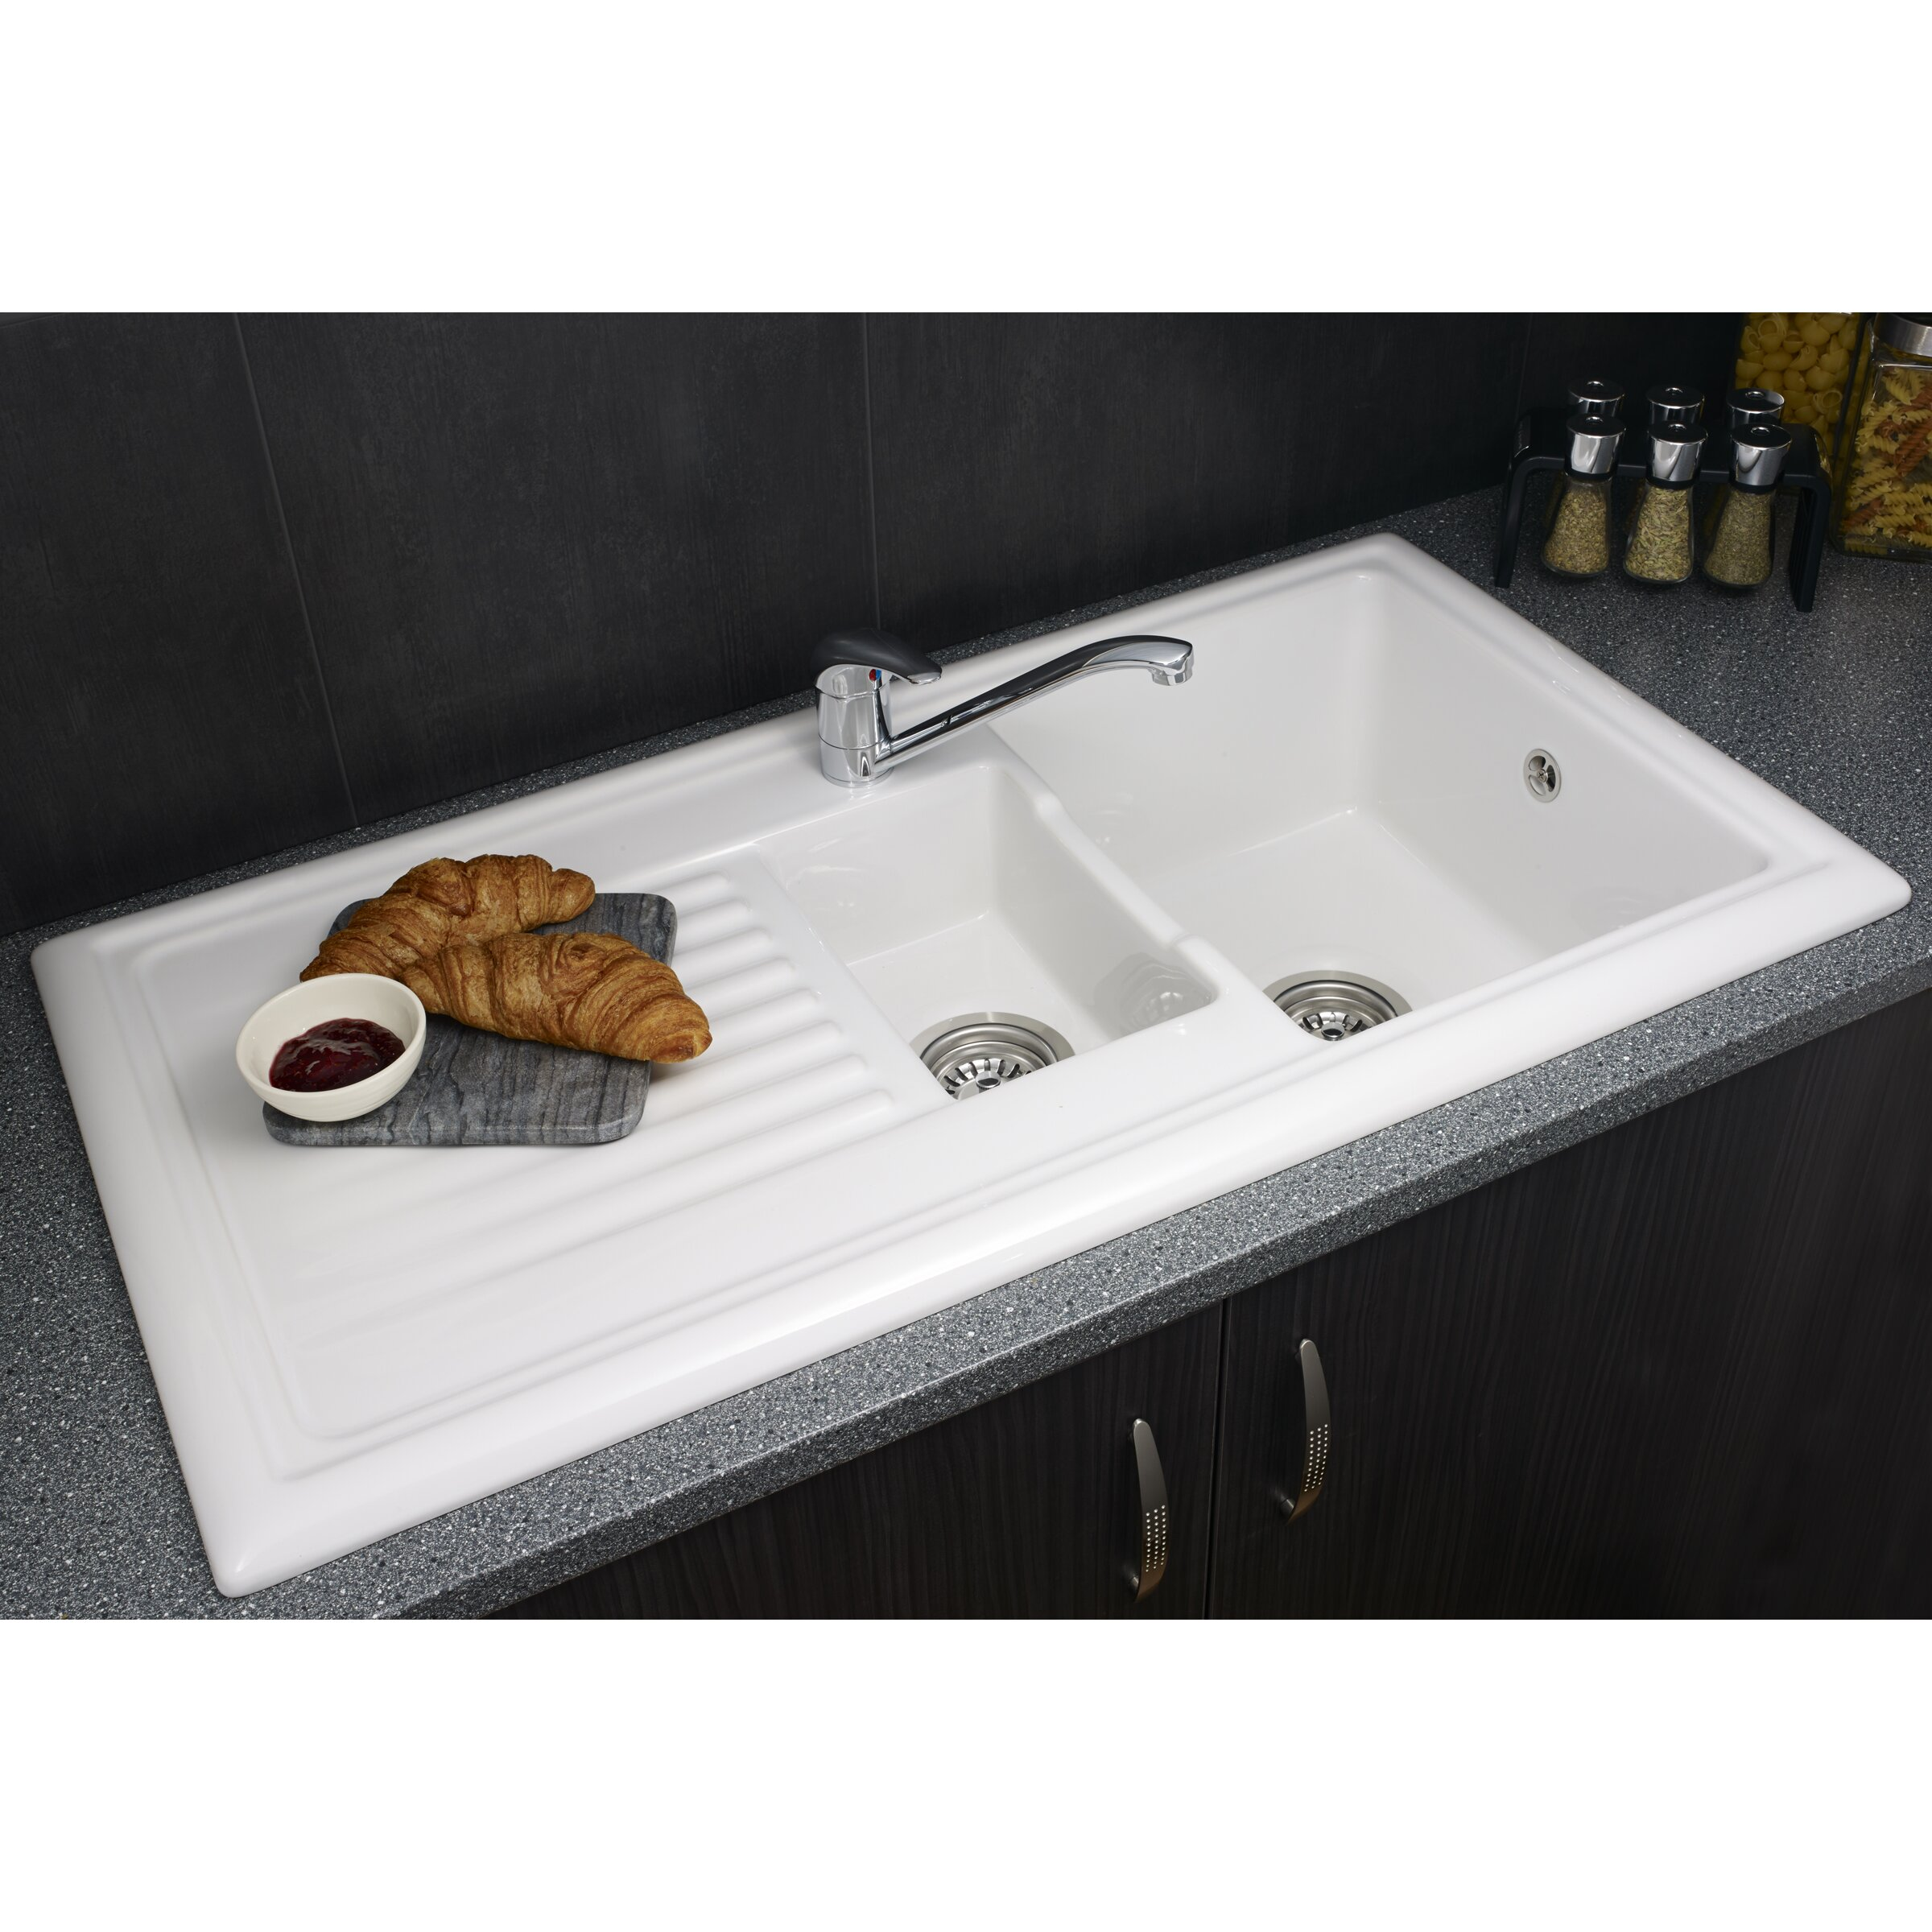 diy kitchen fixtures kitchen sinks reginox sku rxgi1168